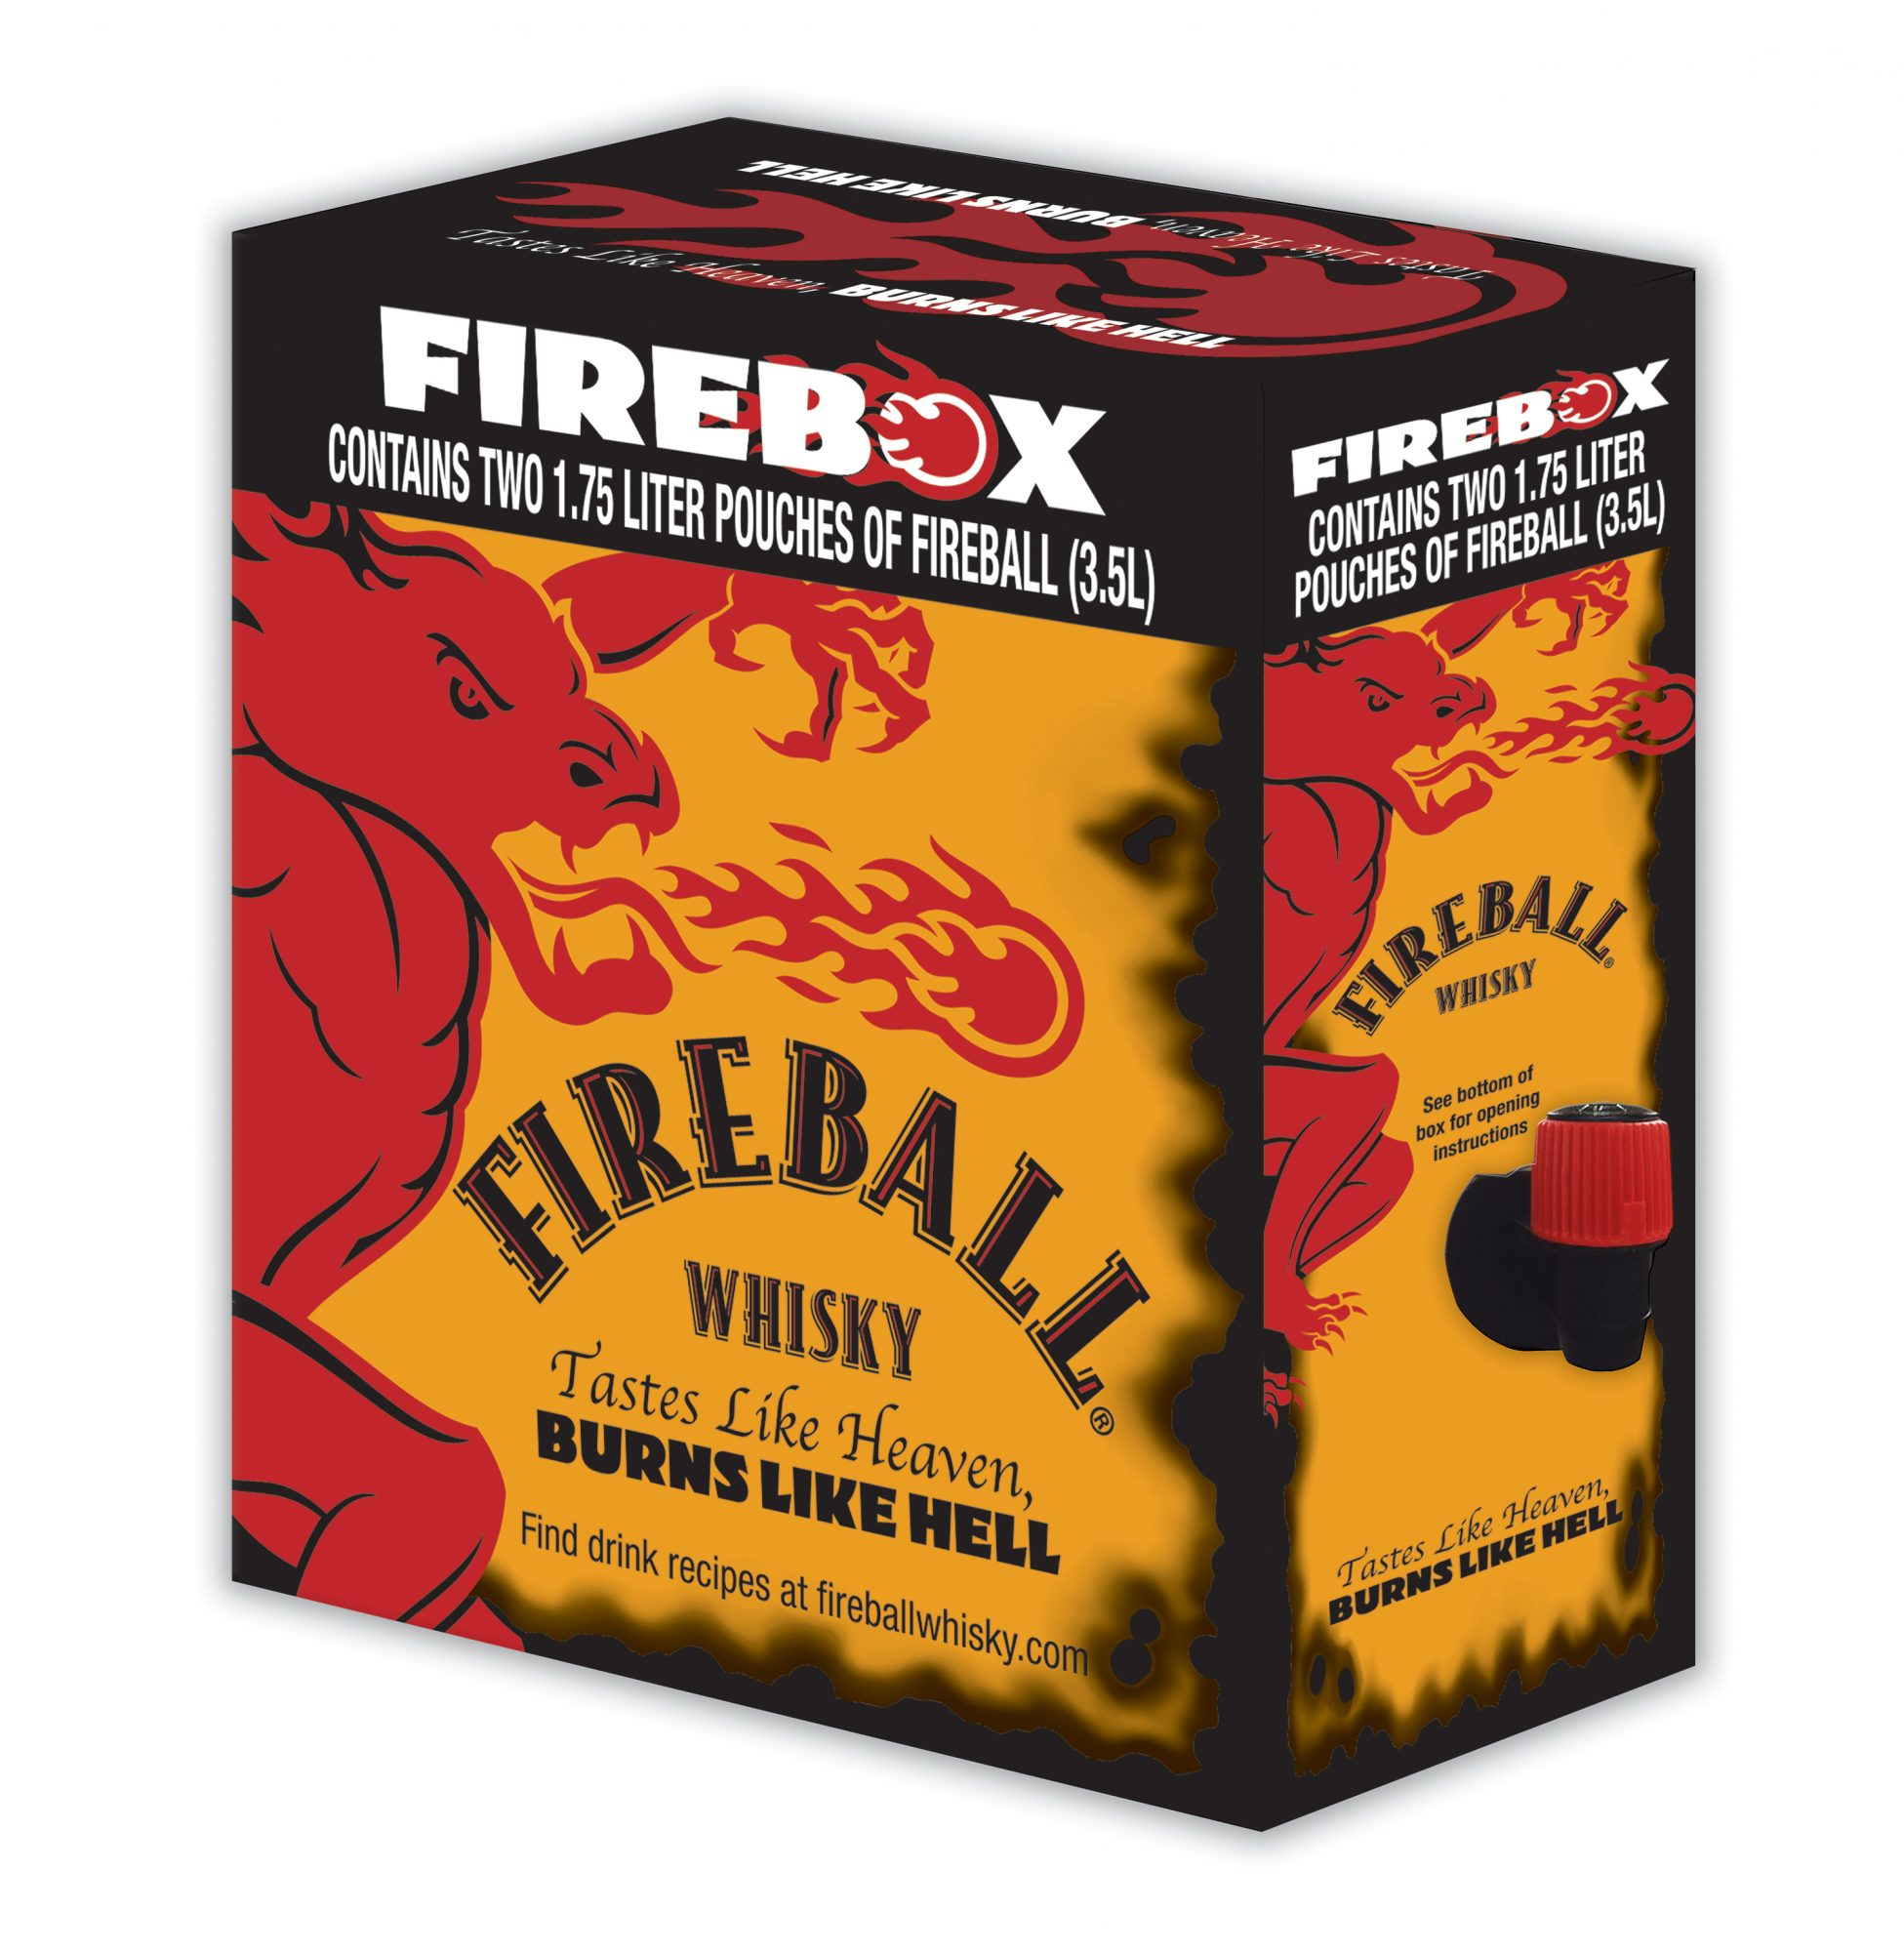 Fireball Firebox